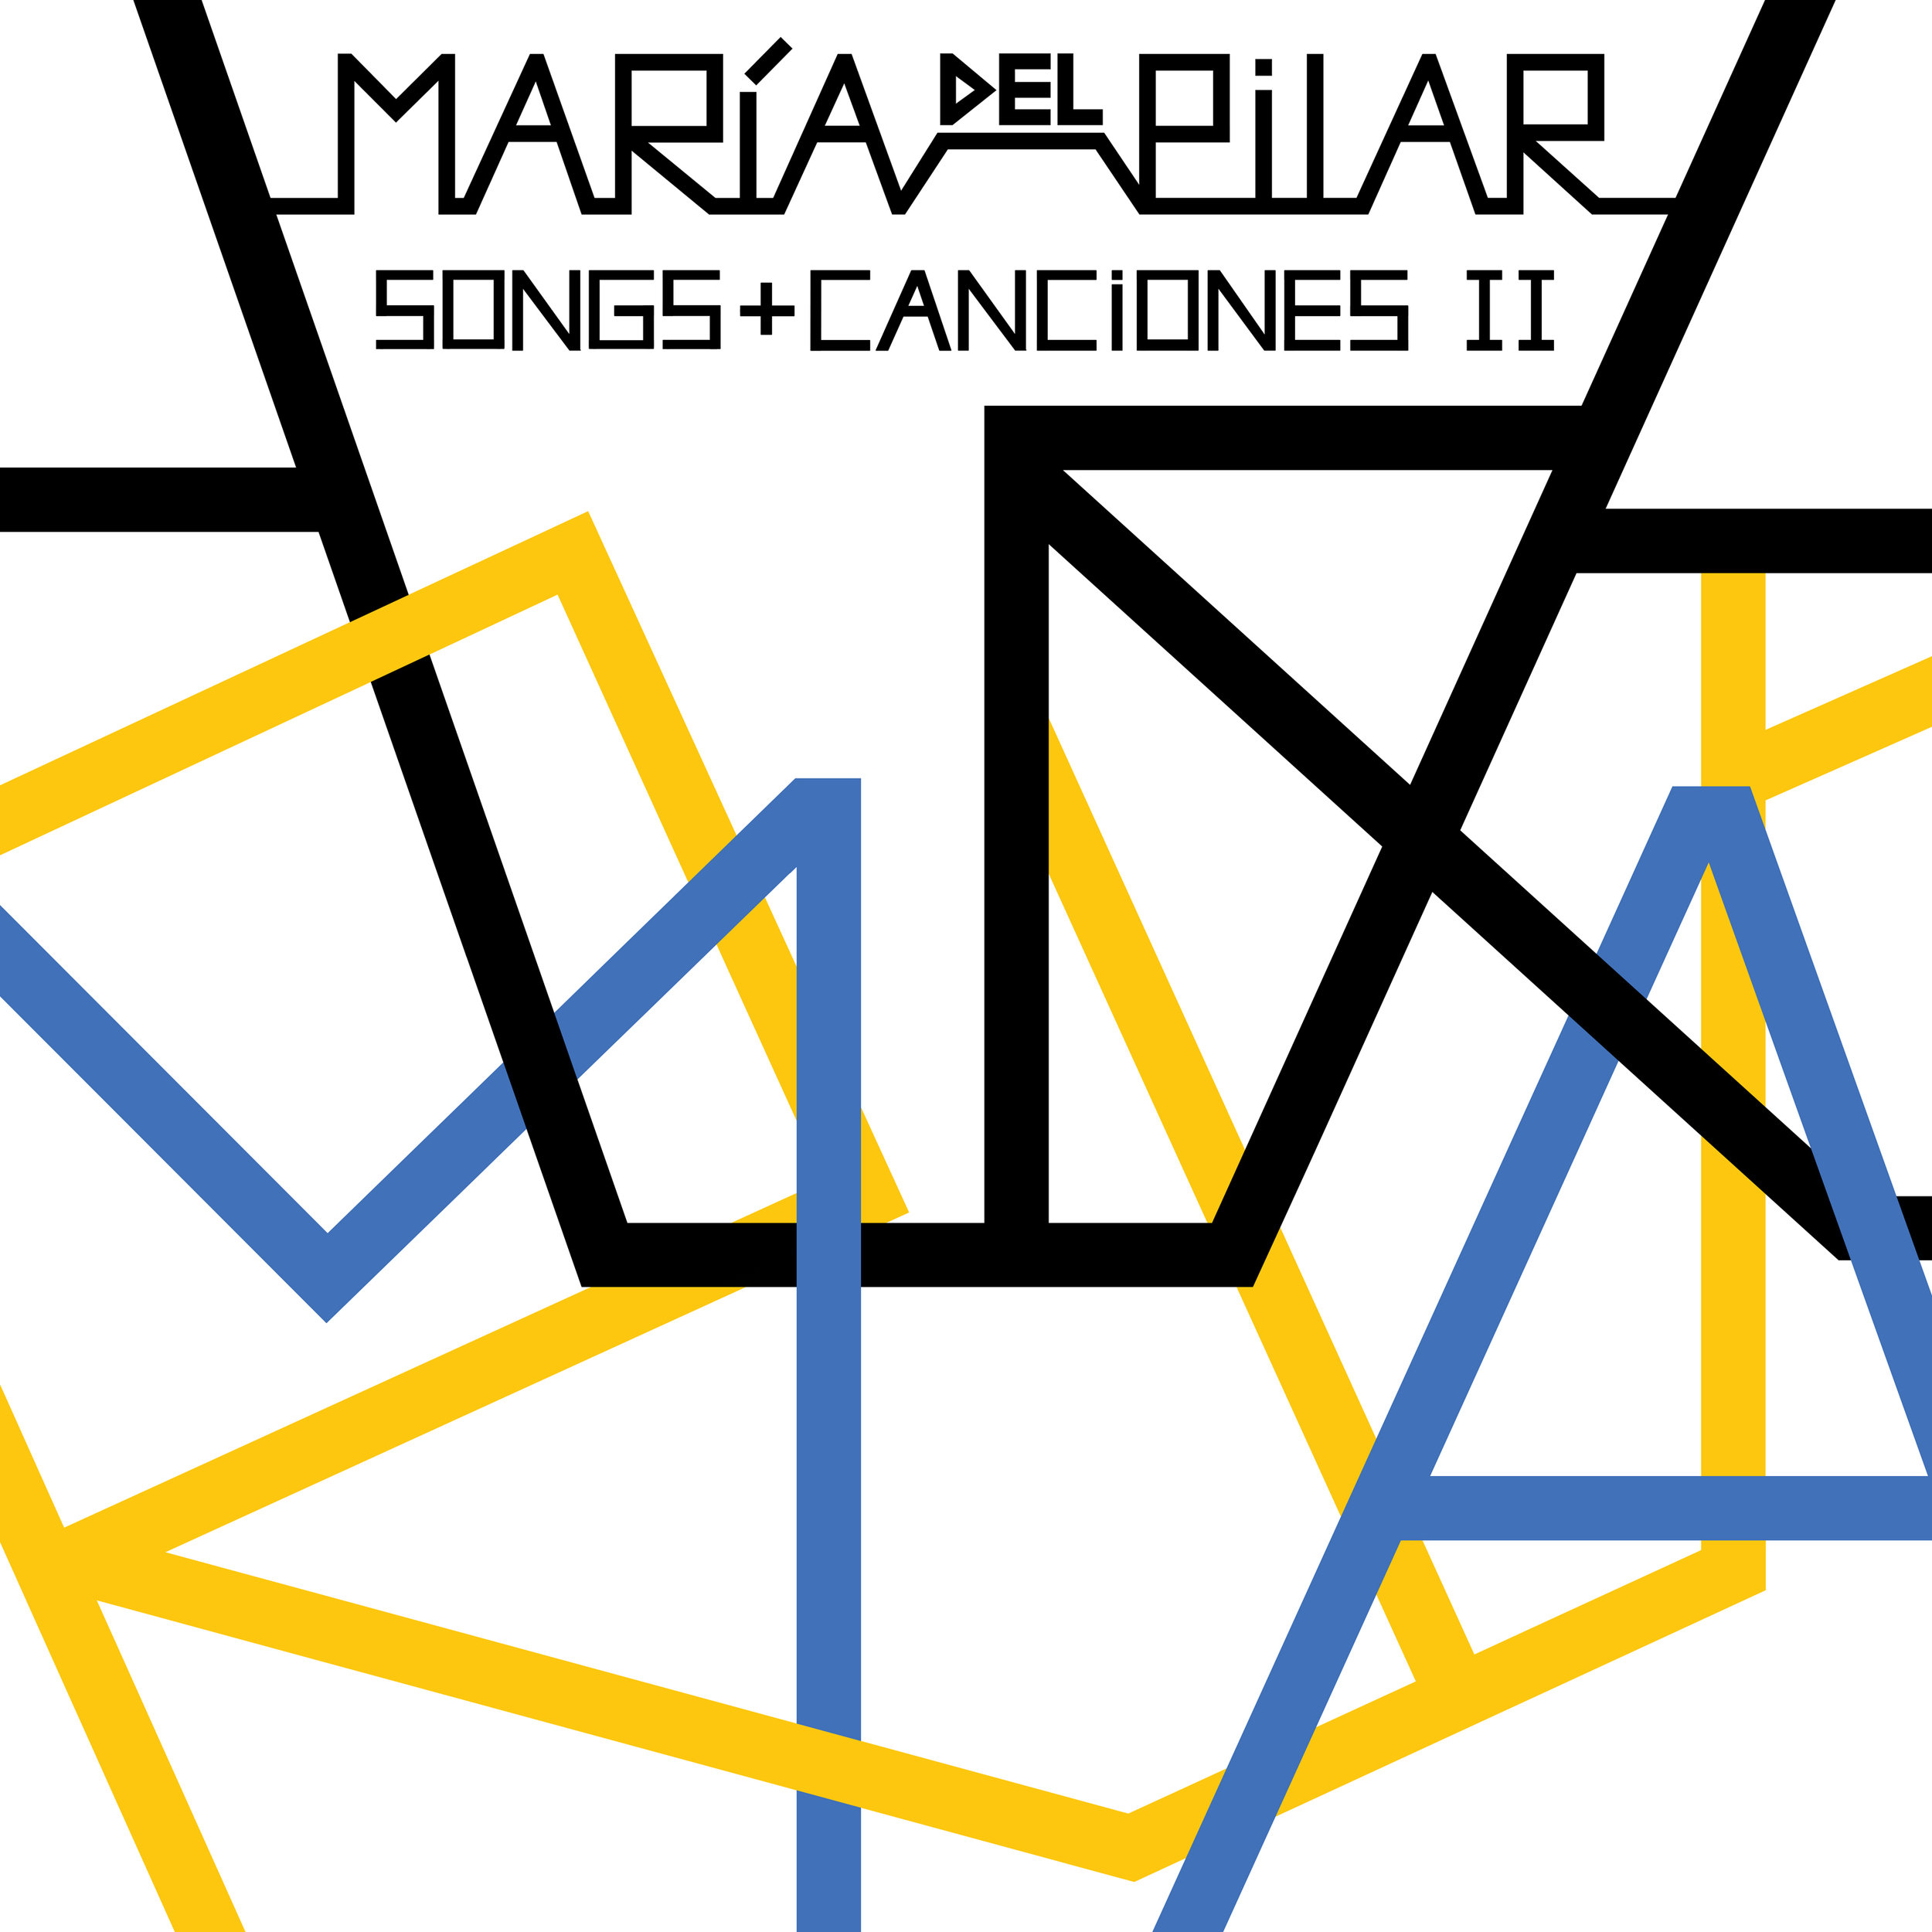 Songs + Canciones II 3000x3000.jpg